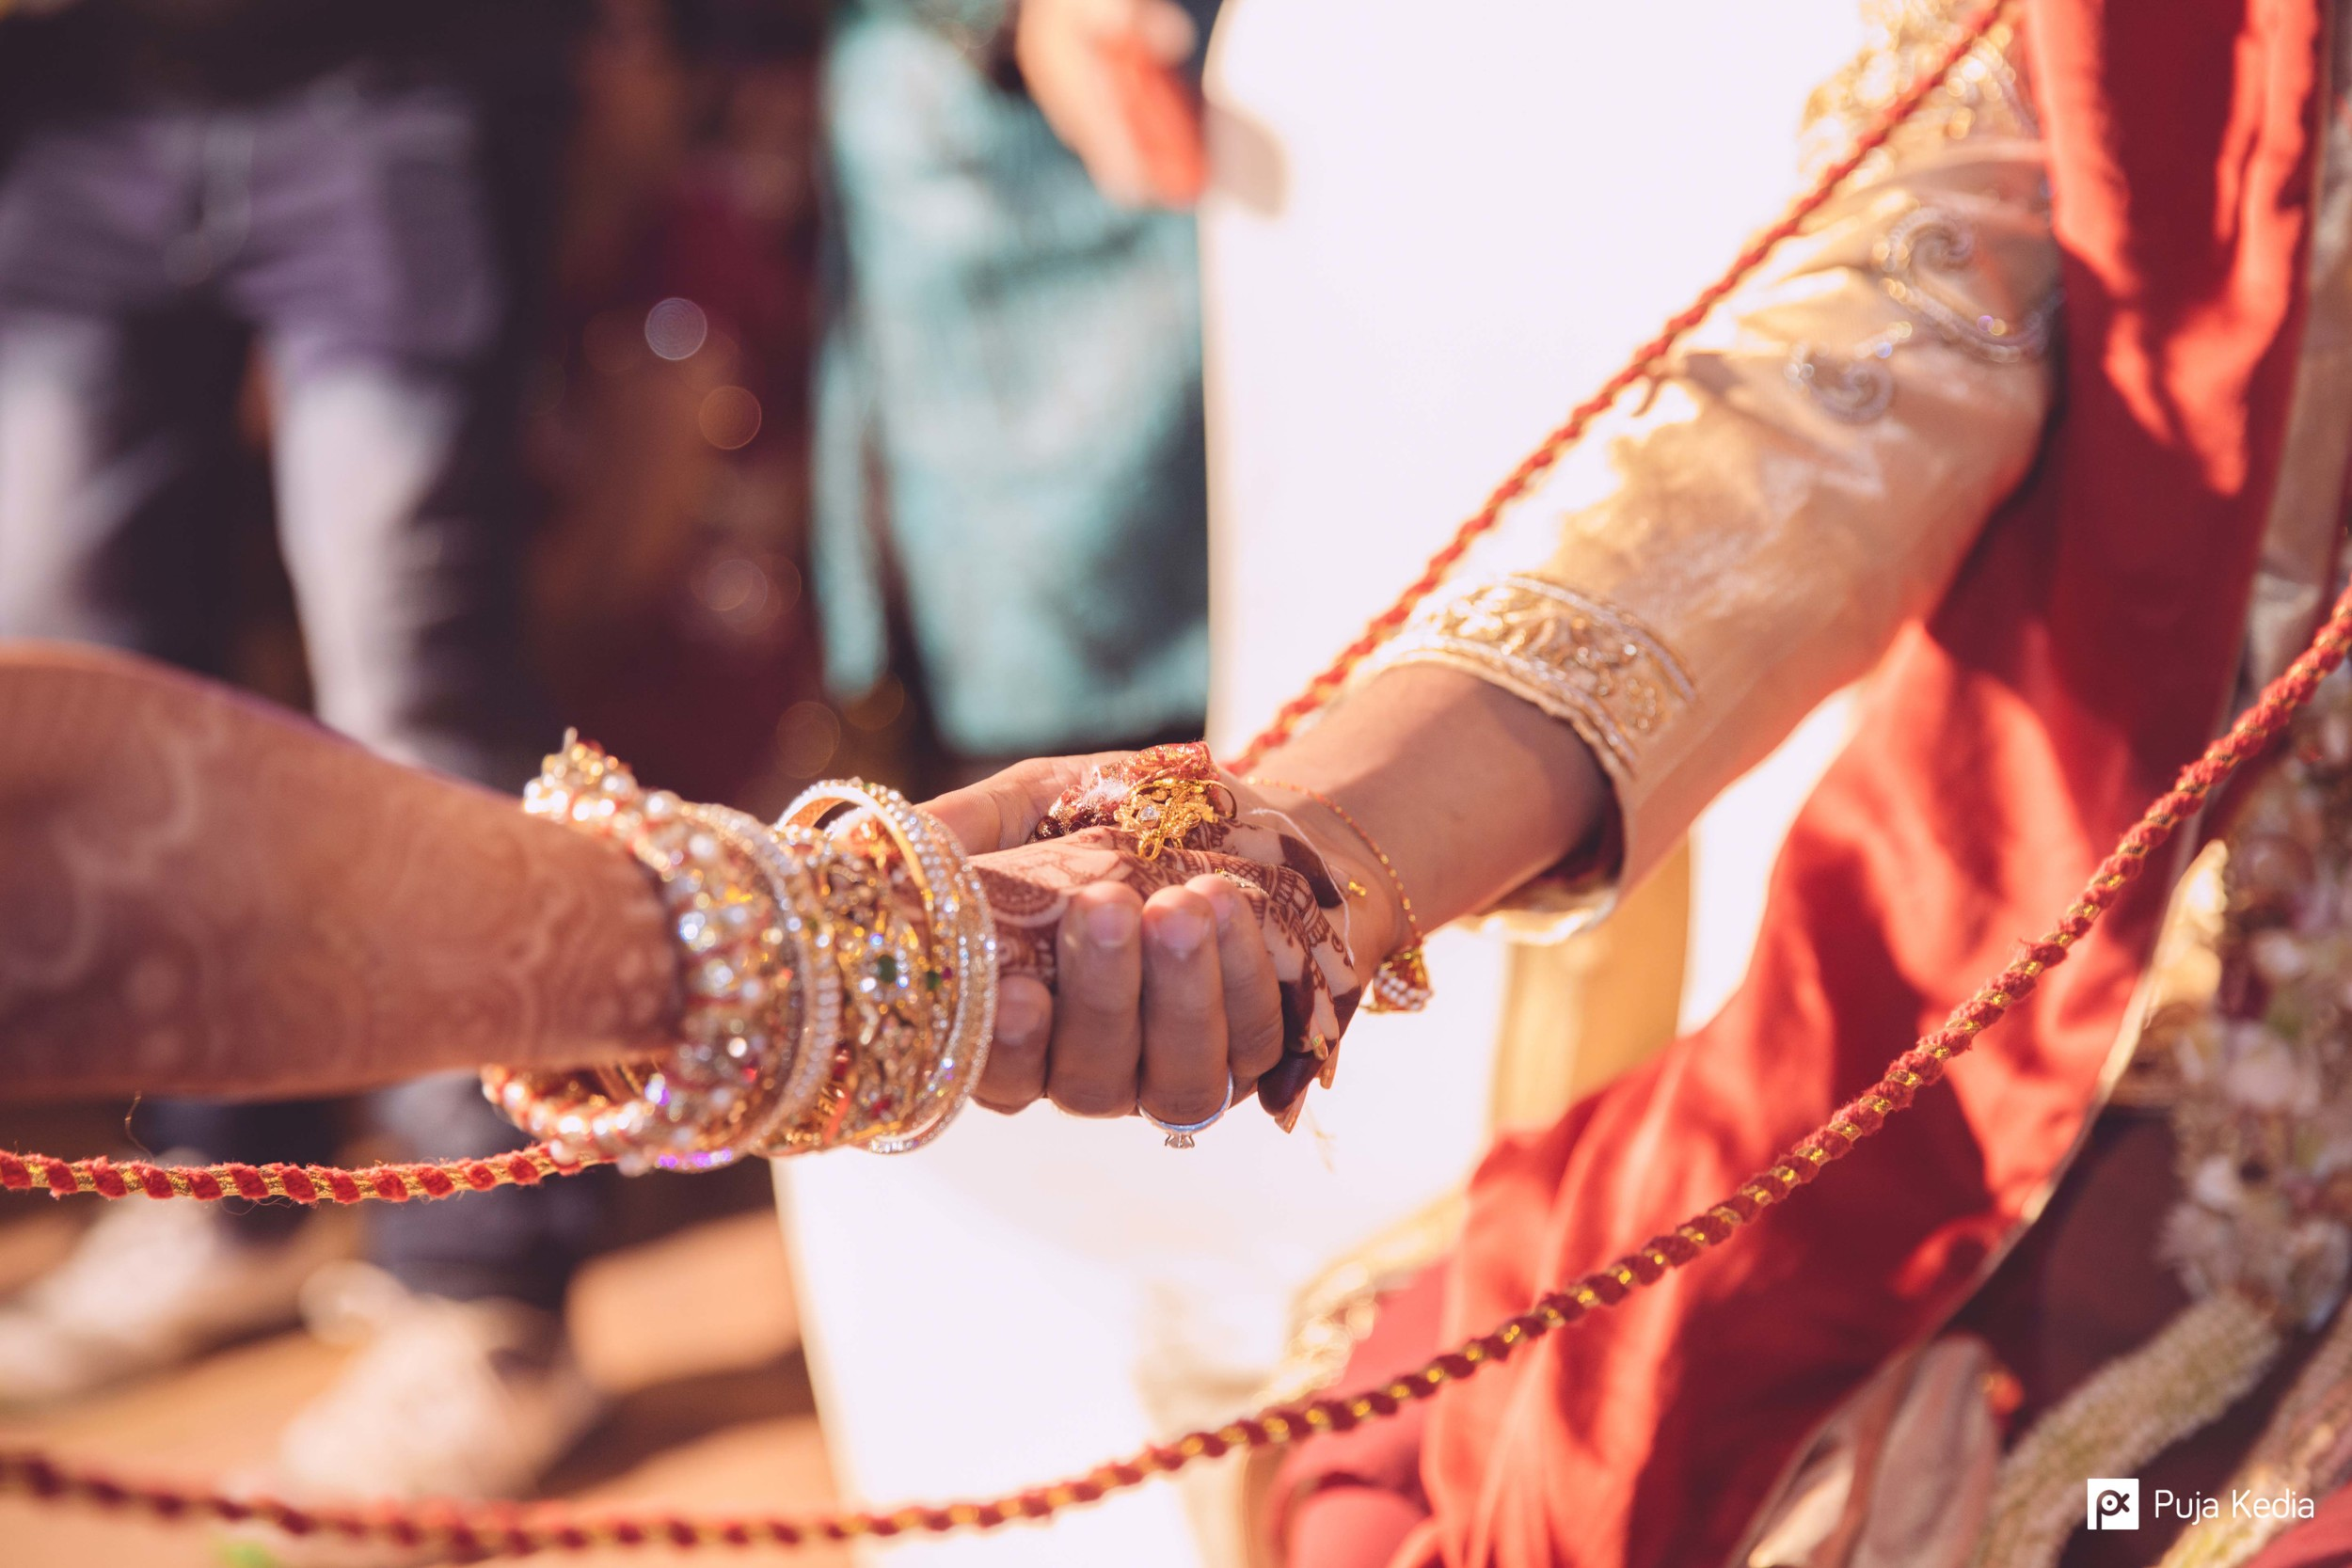 This knot and the joined hands of the couple symbolise the union of two souls joined together in holy matrimony.